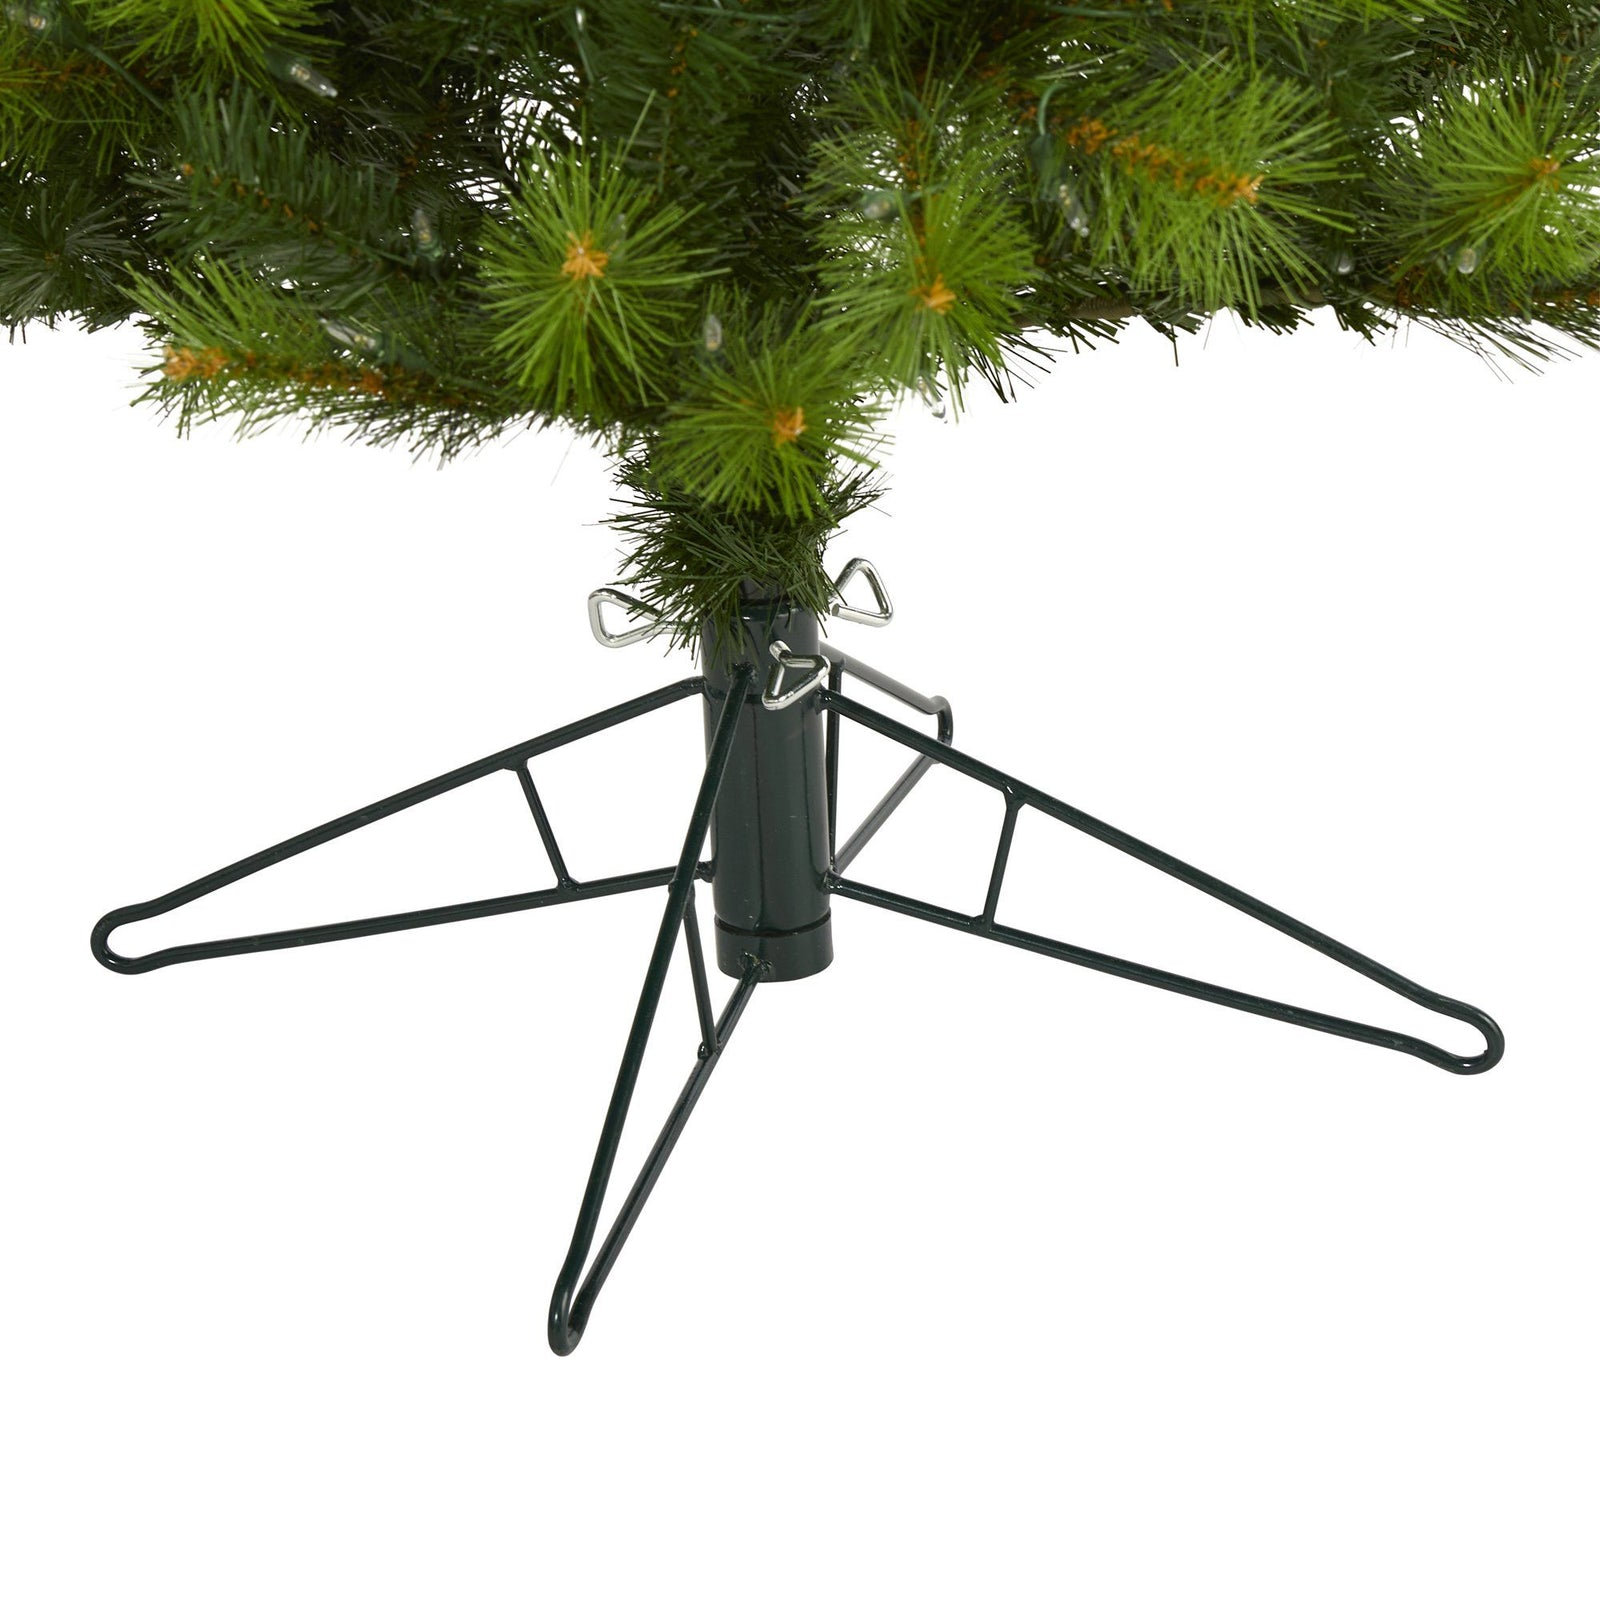 6.5' Green Valley Pine Artificial Christmas Tree with 300 ...